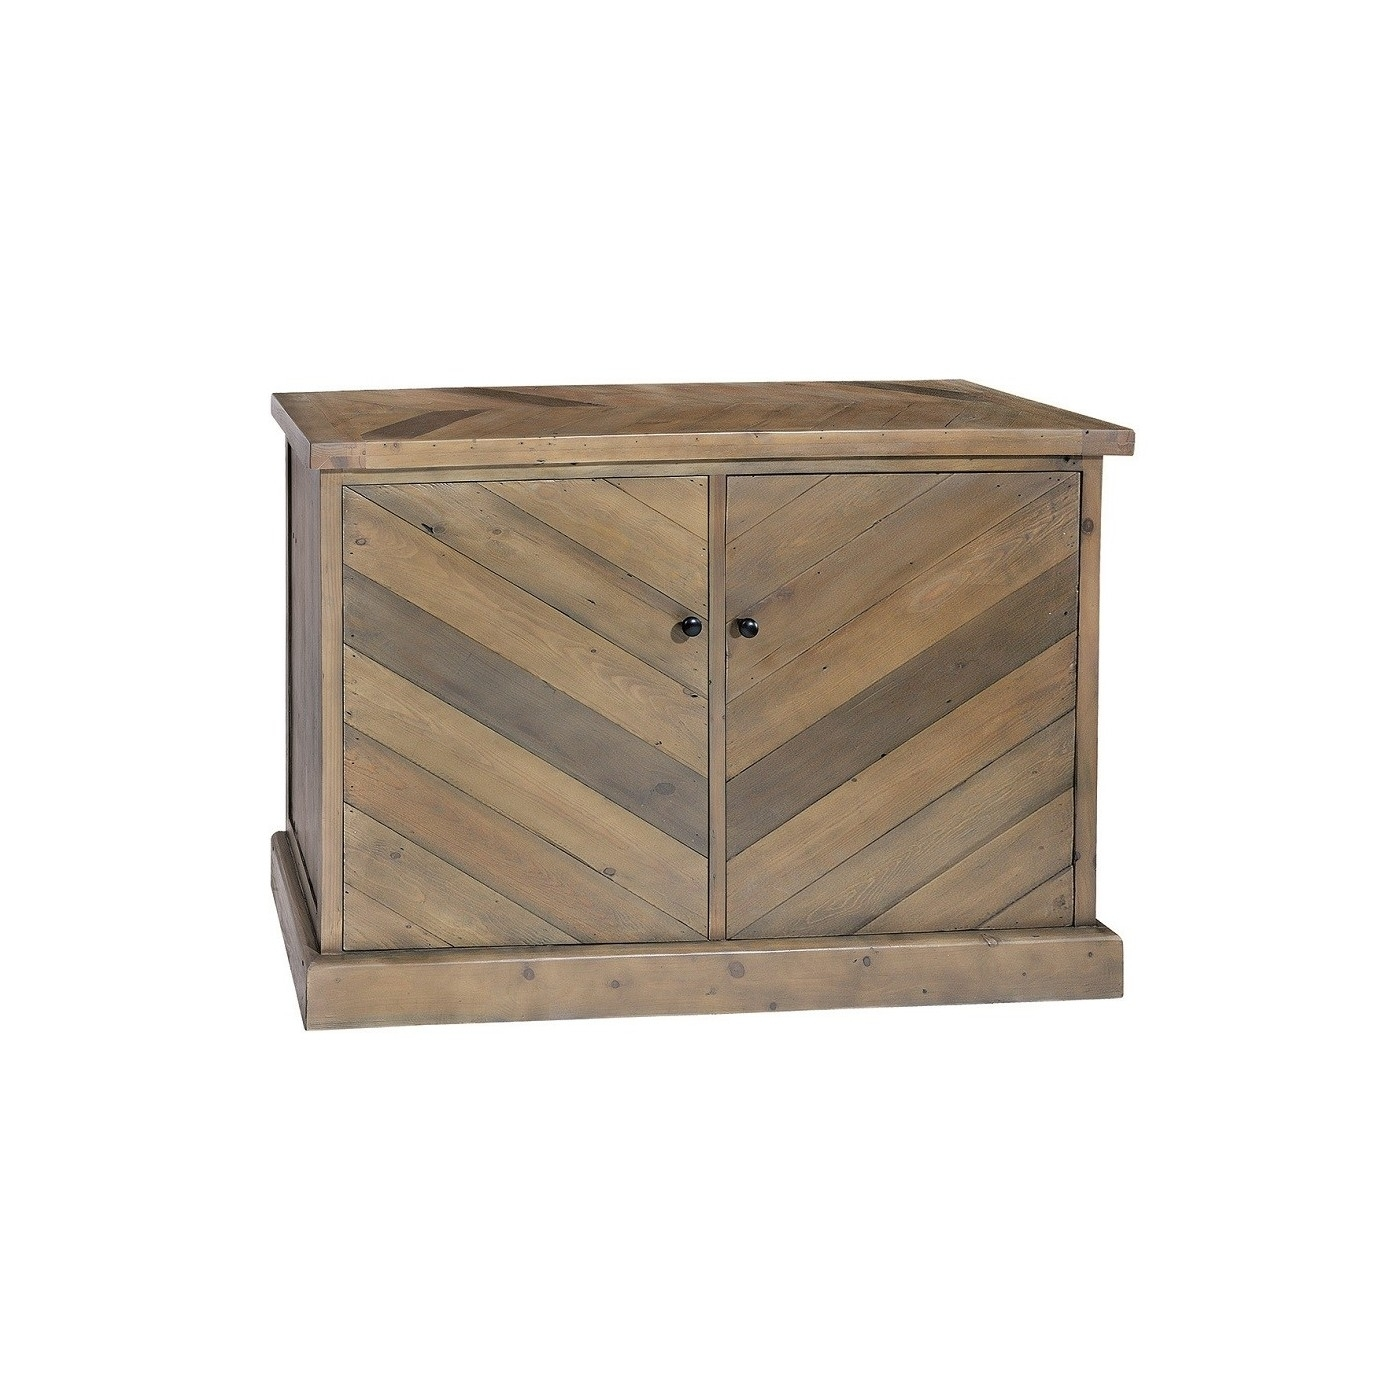 Inspiration about Parquet Reclaimed Pine Small Sideboard | Bedford In Most Current Parquet Sideboards (#9 of 20)